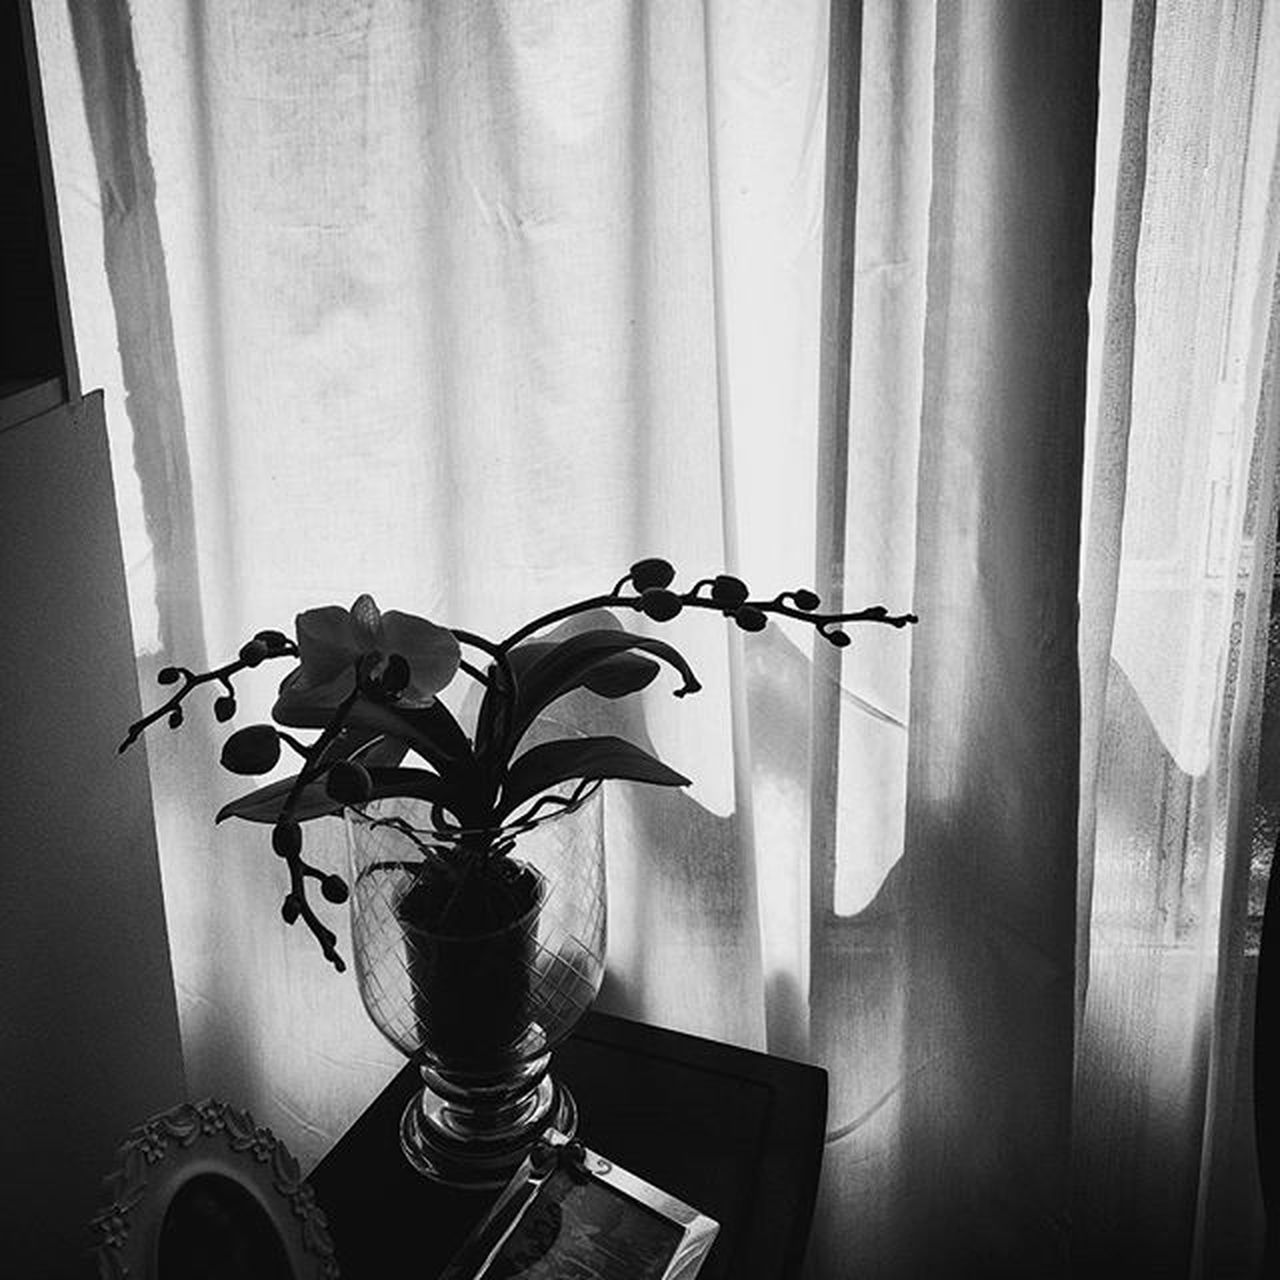 Life Flowers Orquídea Shadows Light Blackandwhite Bng B &w Sunnydayswillcome Sunnydays Sunday Easter Faded_world Faded Mysquarehere Windowswithaview Laliphotography Enjoyit Igers Igersoftheday